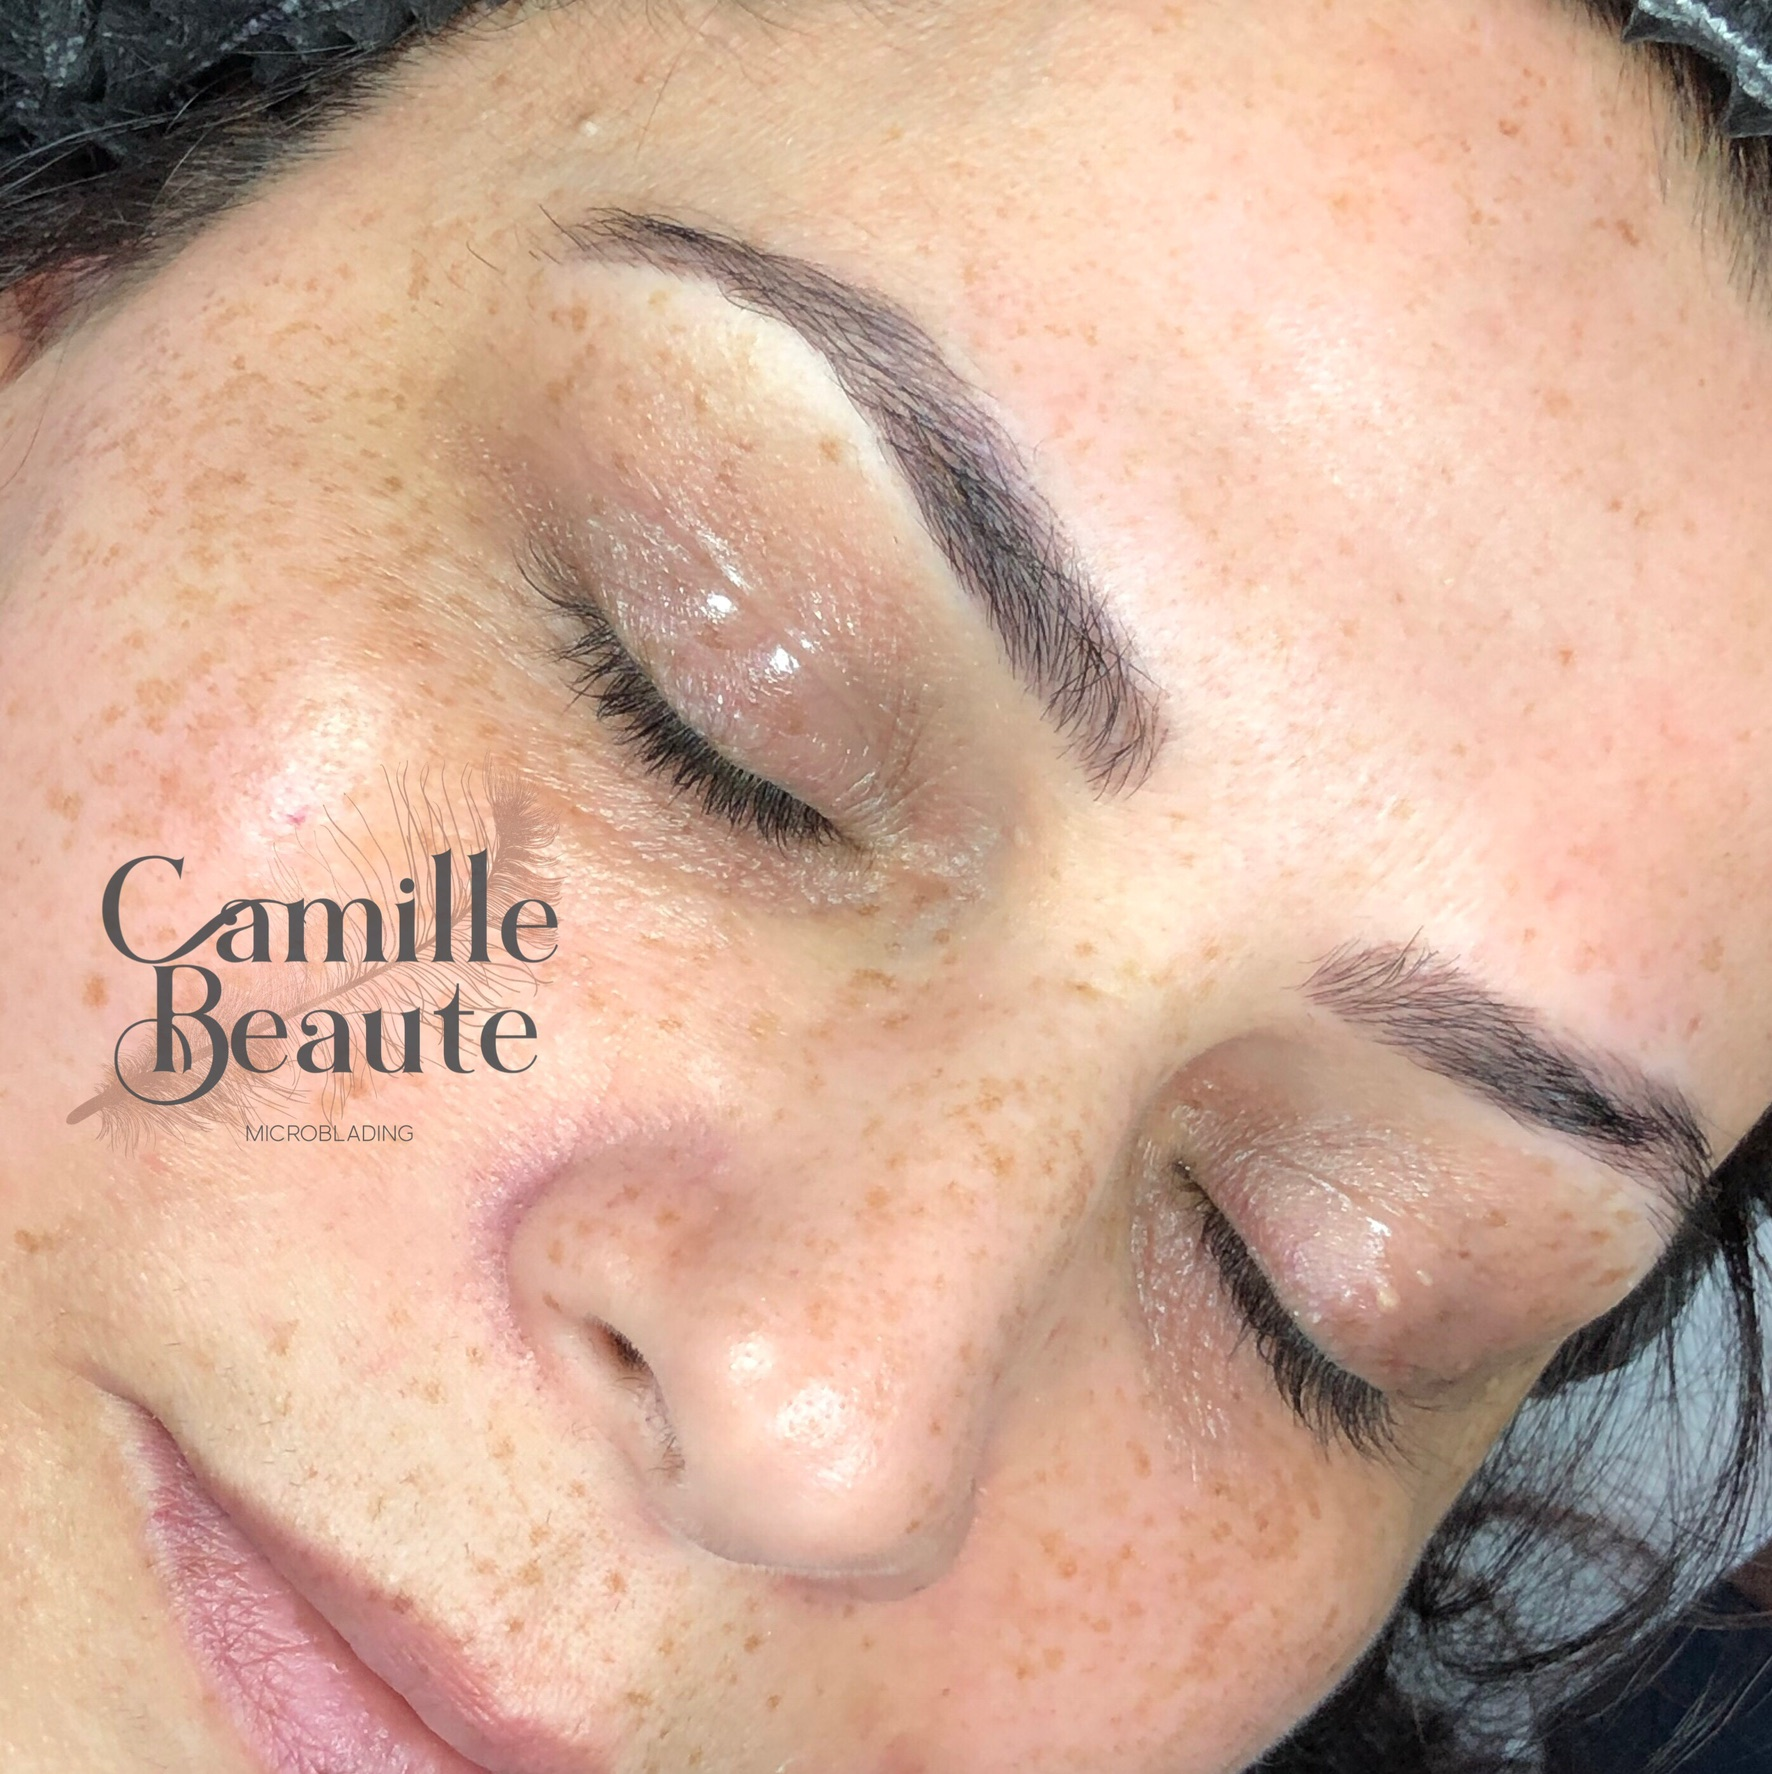 Microblading Courses London Image00001 – Camille beaute